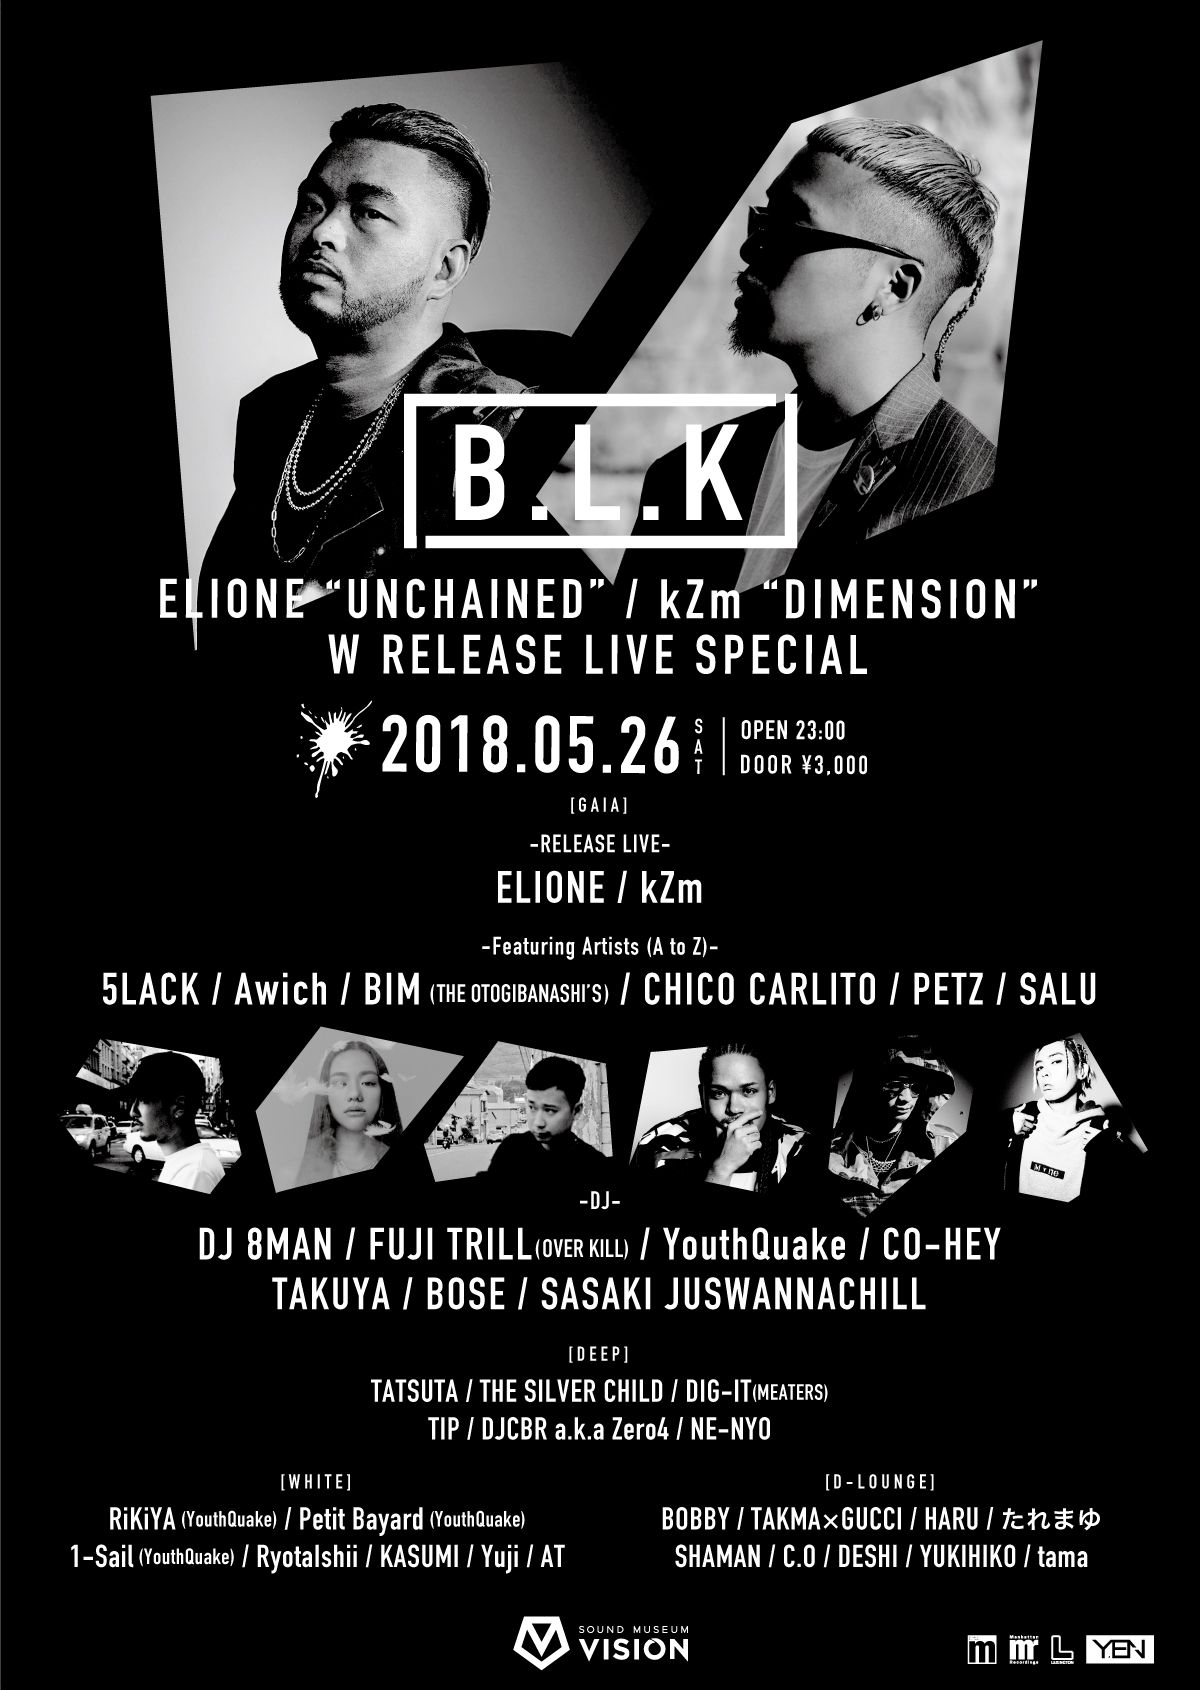 "B.L.K ELIONE""UNCHAINED"" / kZm""DIMENSION""  W RELEASE LIVE SPECIAL"